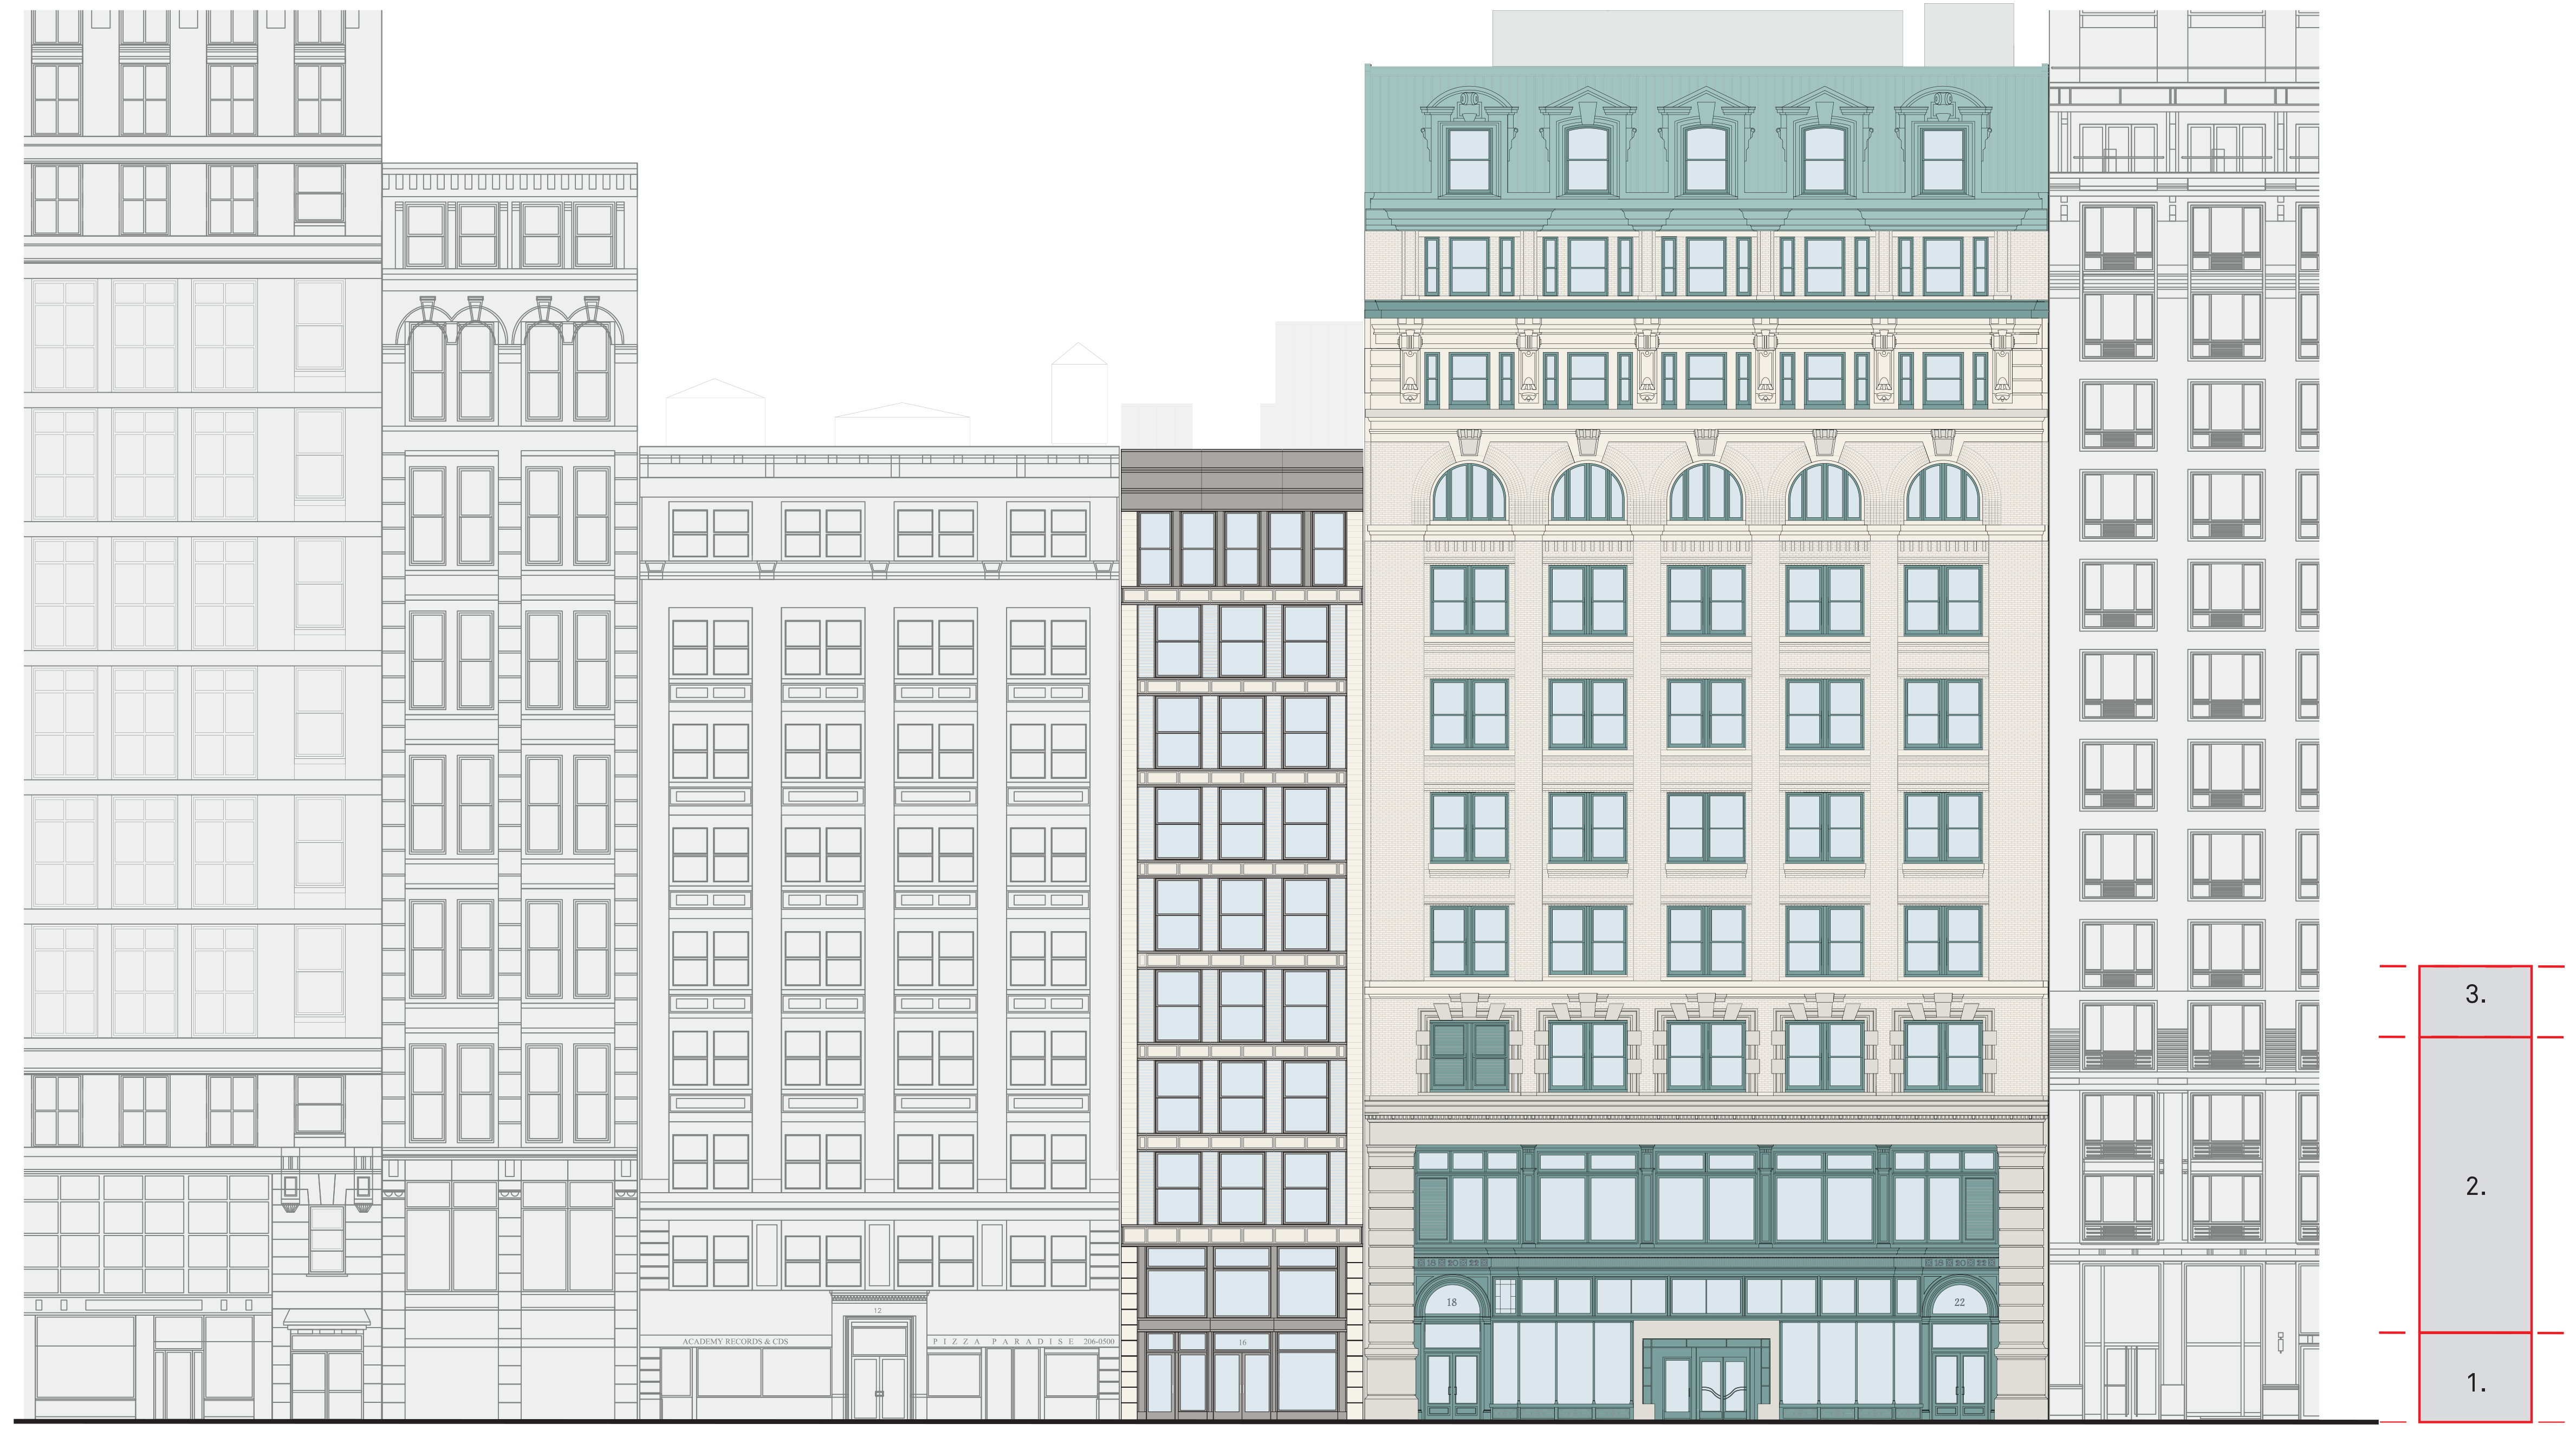 Proposed 18th Street elevation